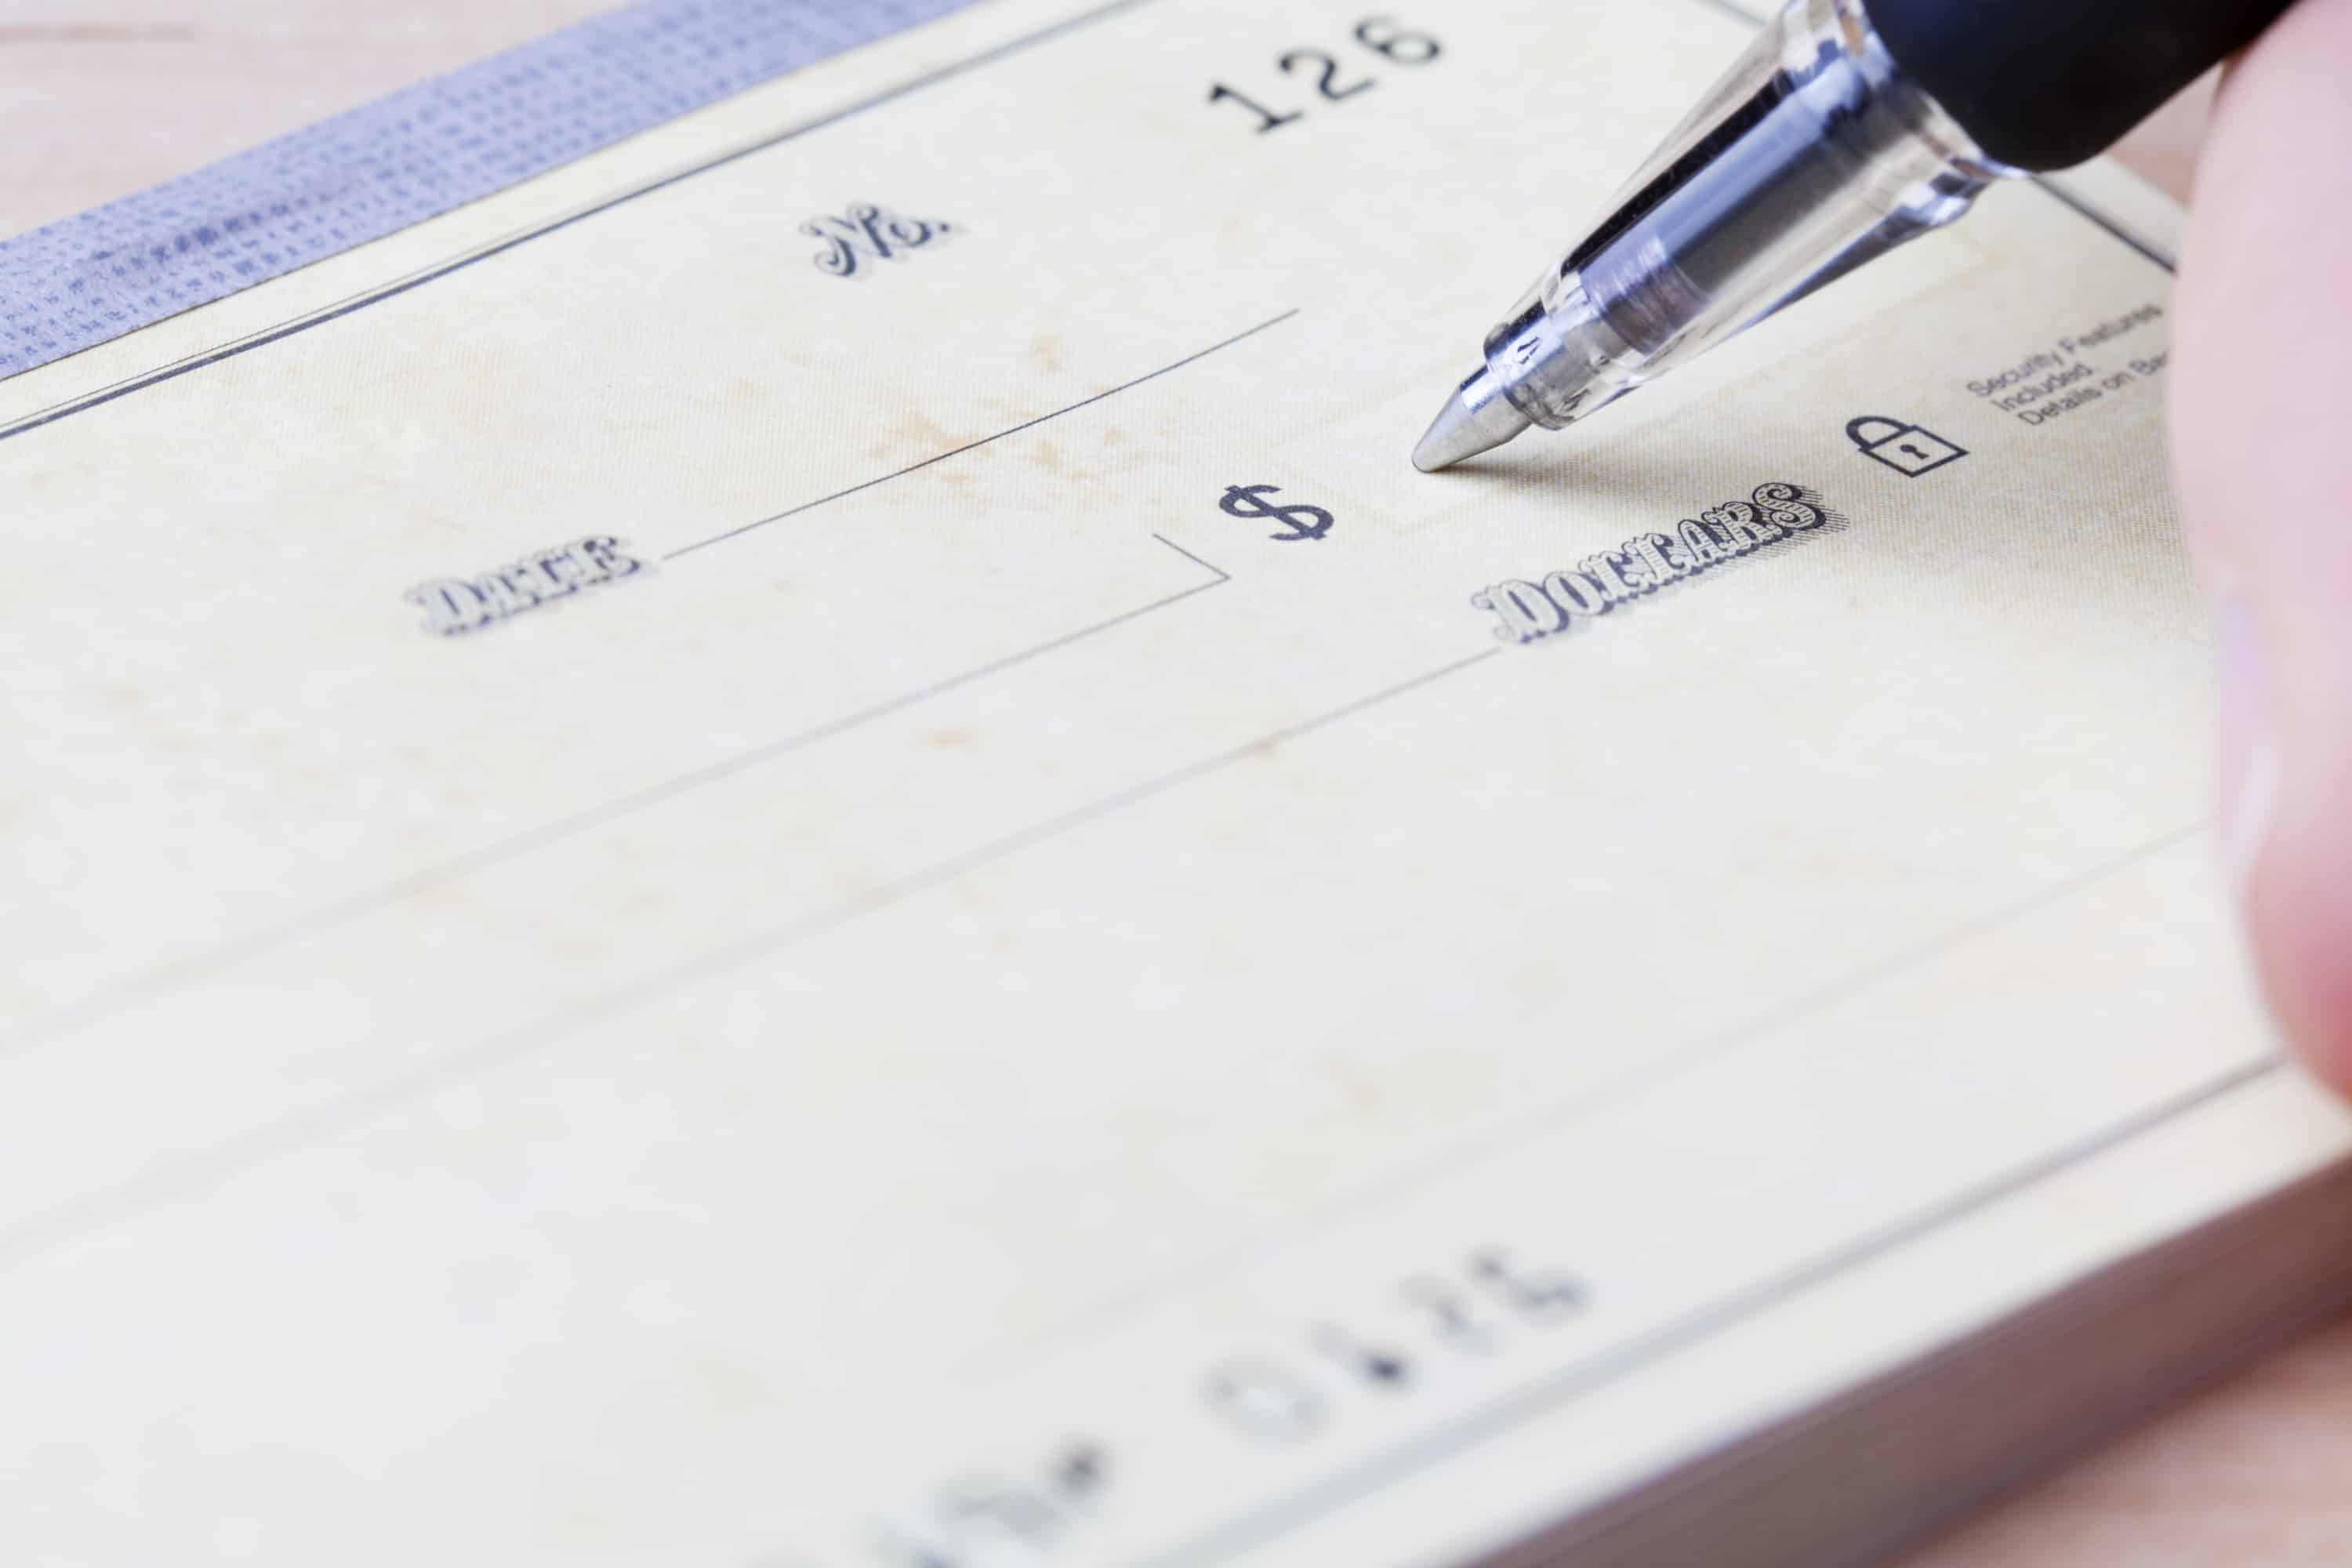 Closeup of a hand filling out a check with a black ballpoint pen